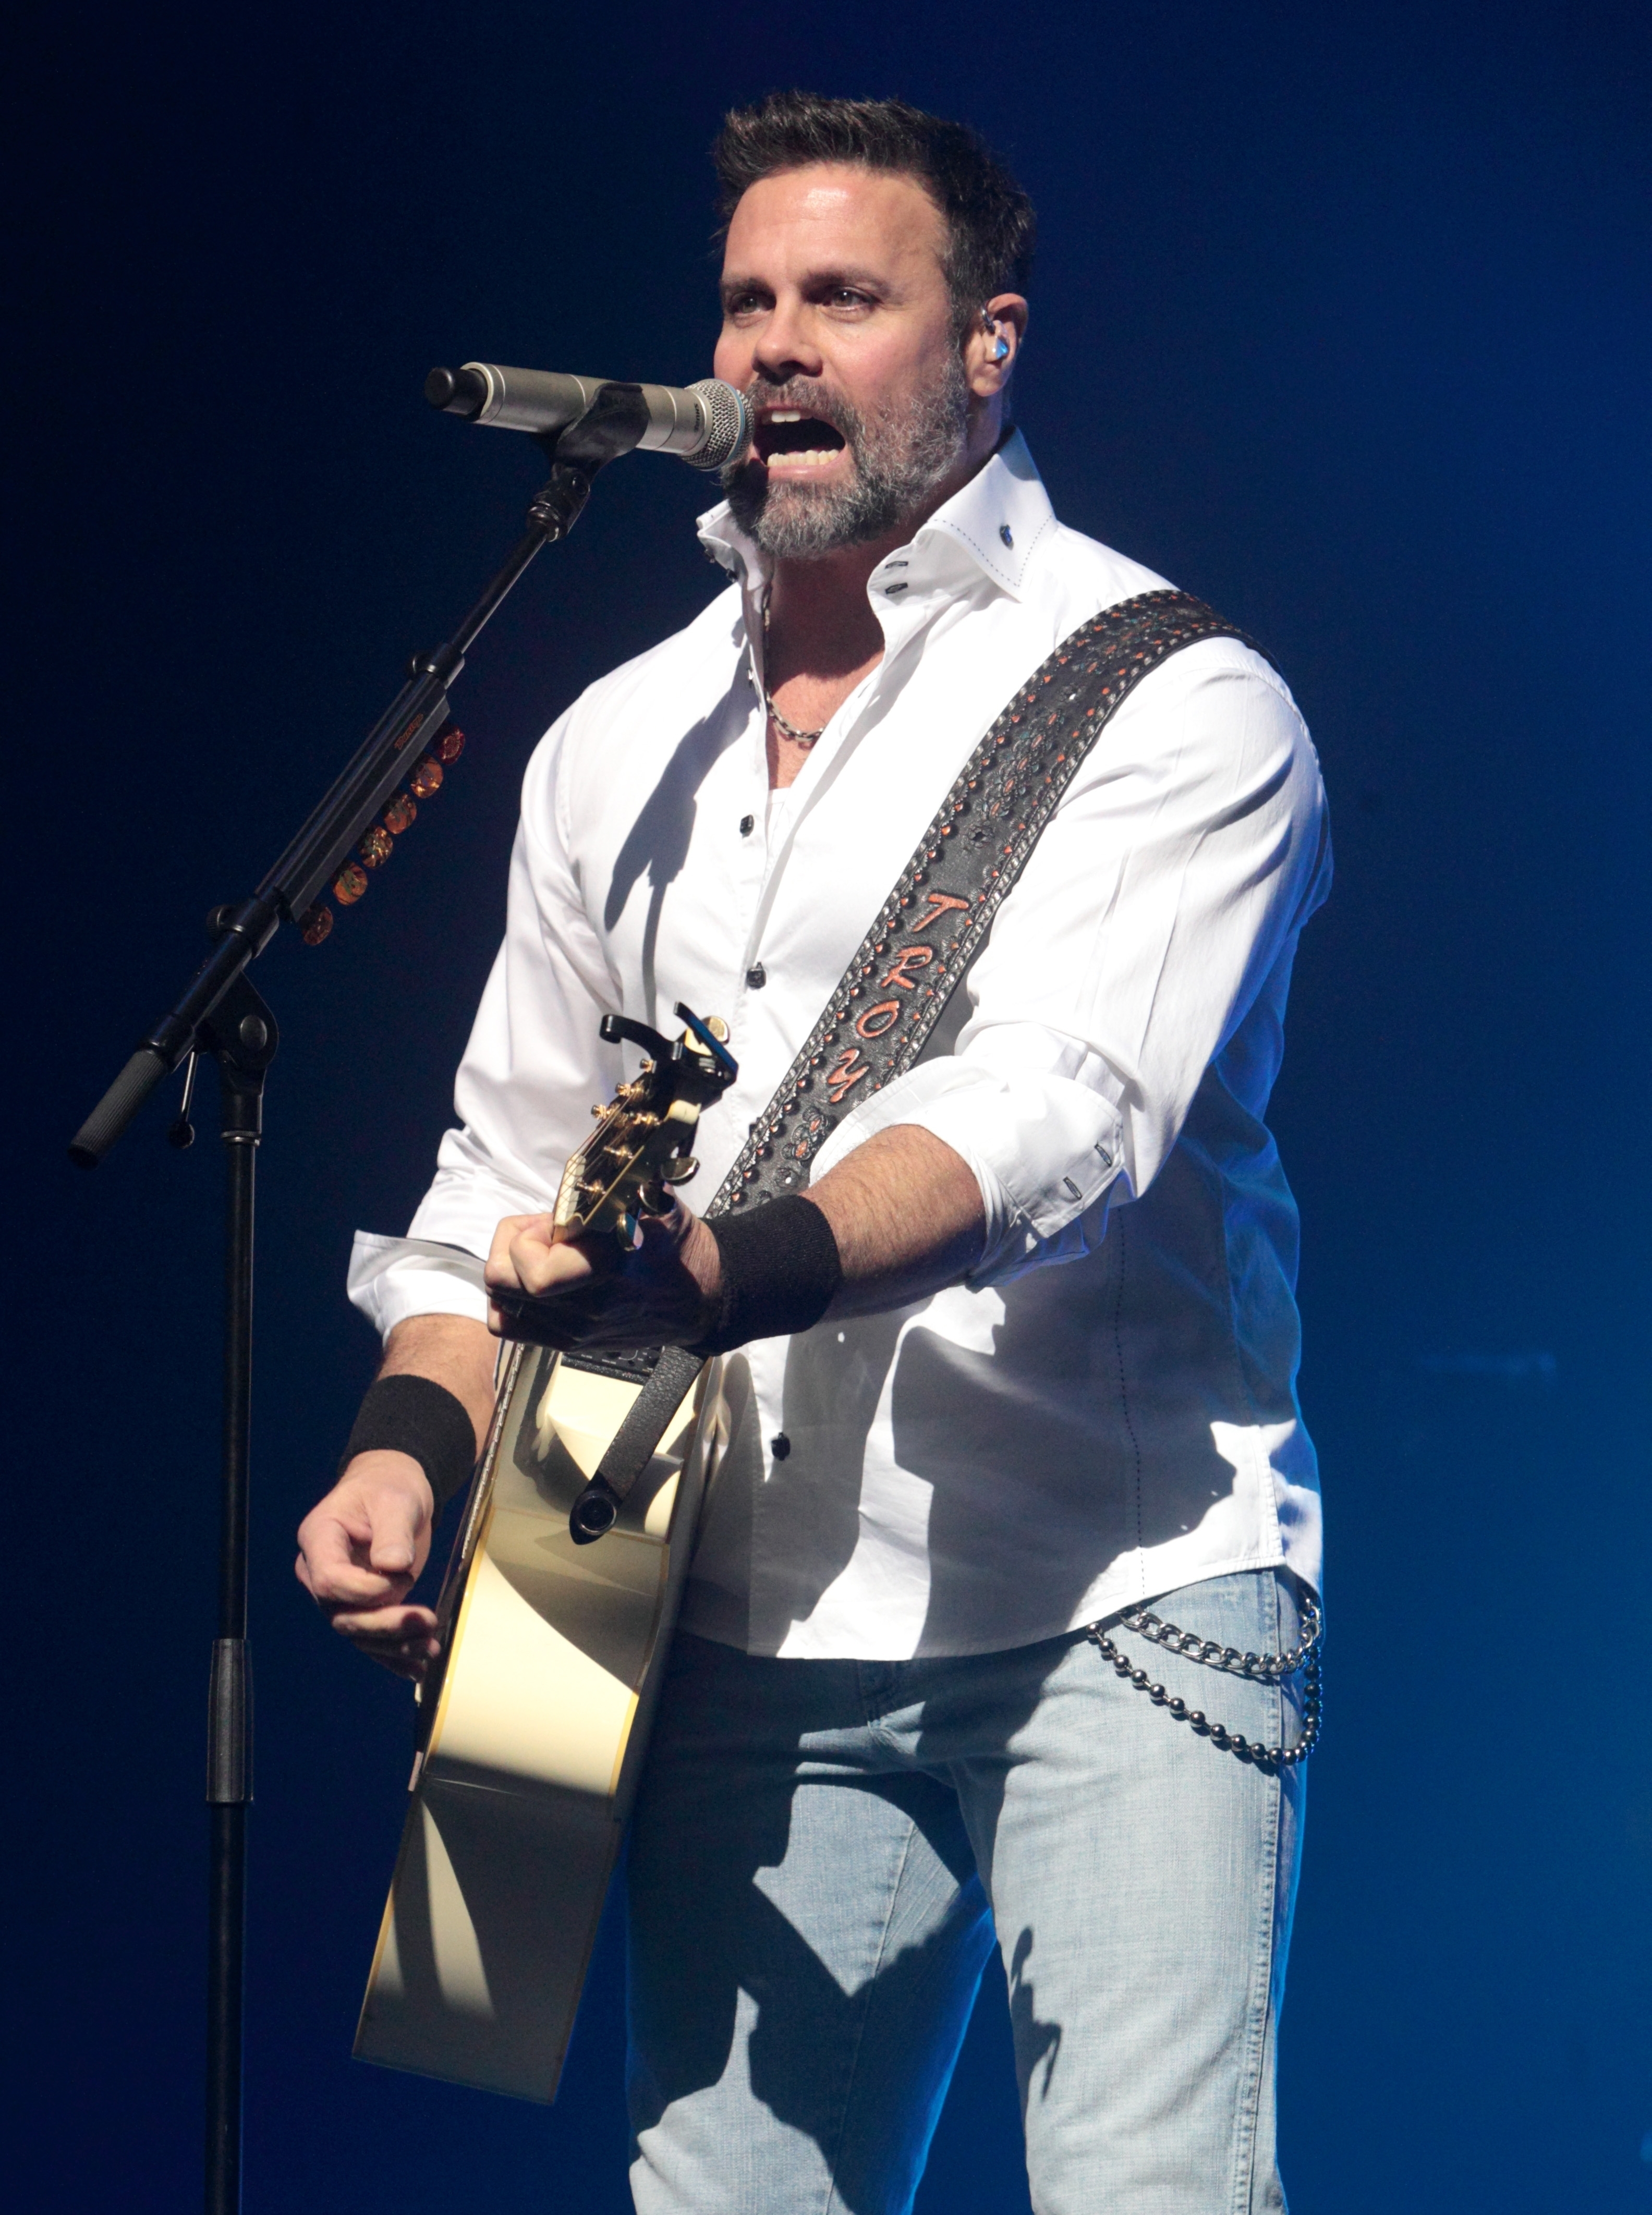 FILE -- In this Jan. 17, 2013, file photo, Troy Gentry of the Country Music duo Montgomery Gentry performs on the Rebels On The Run Tour in Lancaster, Pa. Gentry, one half of the award-winning country music duo Montgomery Gentry, died Friday, Sept. 8, 2017, in a helicopter crash, according to a statement from the band's website. (Photo by Owen Sweeney/Invision/AP, File)